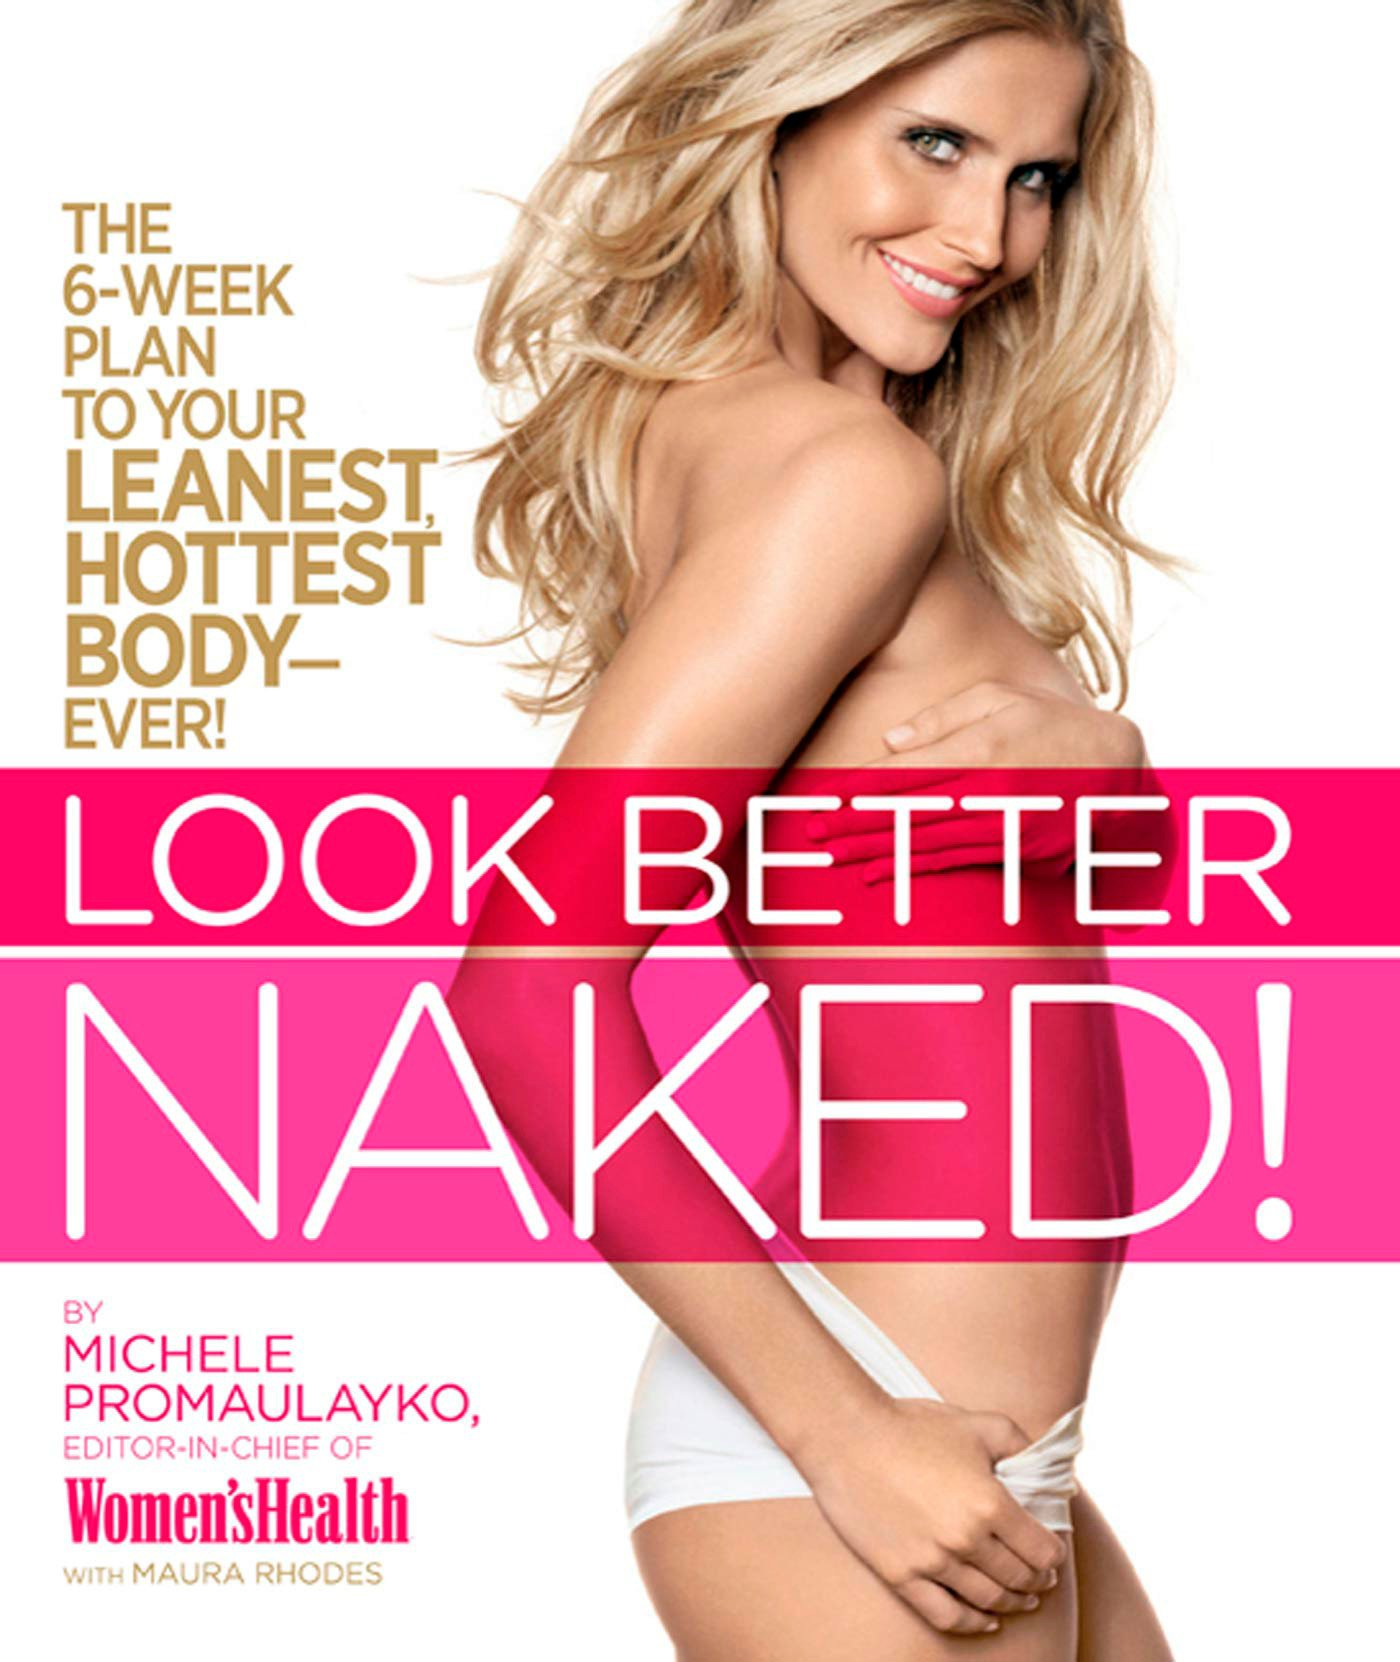 Look Better Naked: The 6-week plan to your leanest, hottest body--ever! pdf